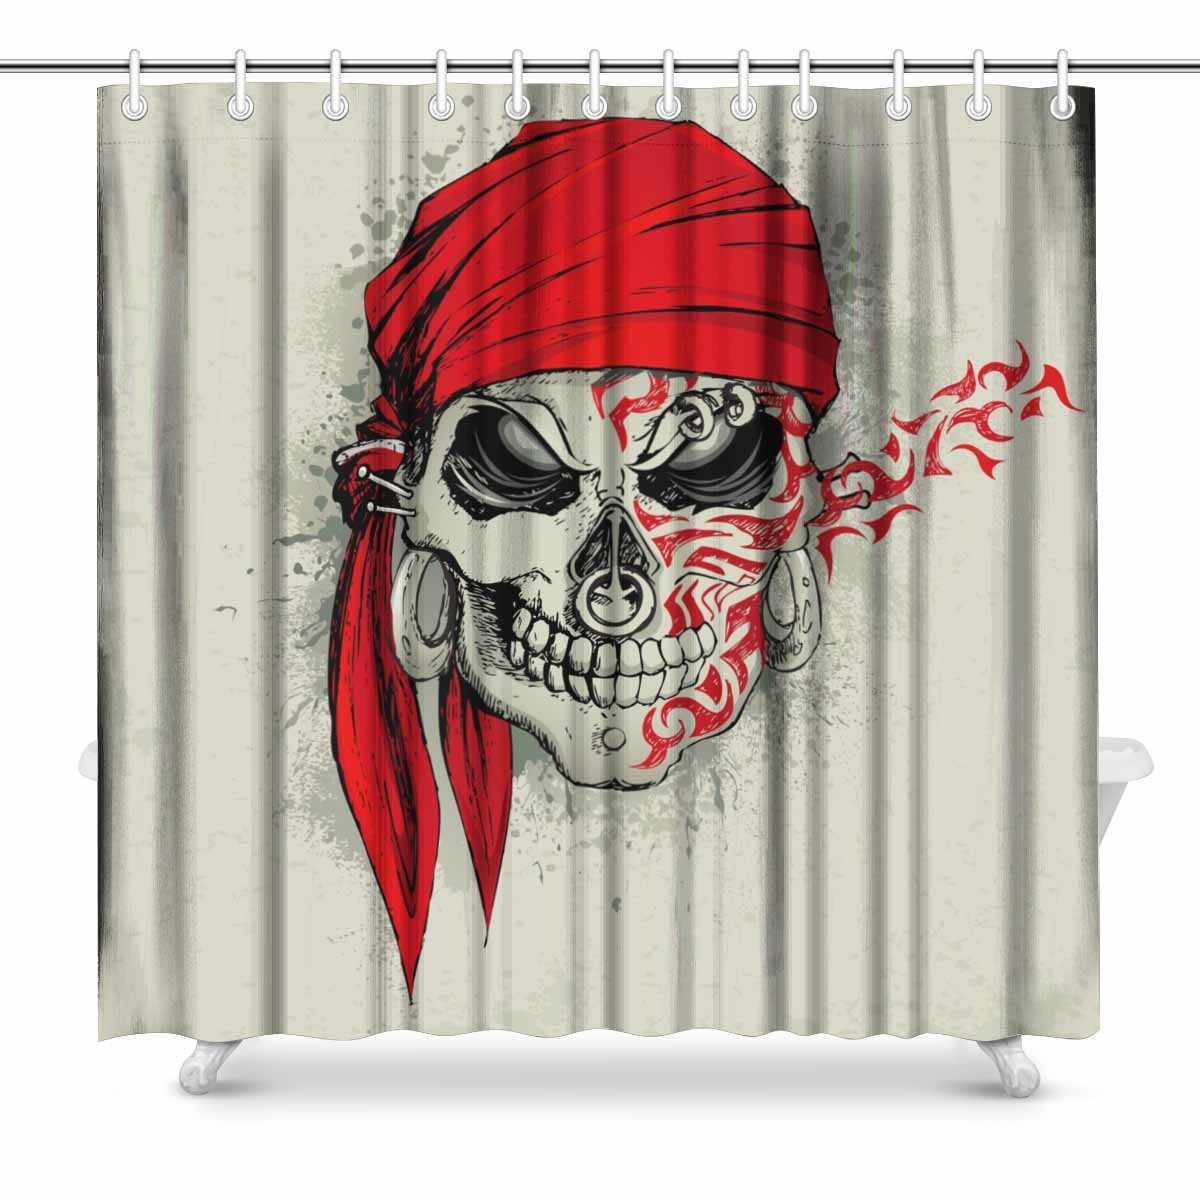 Aplysia Skull With Bandana On Abstract Grungy Background Bathroom Decor Shower Curtain Set Hooks 72 Inches